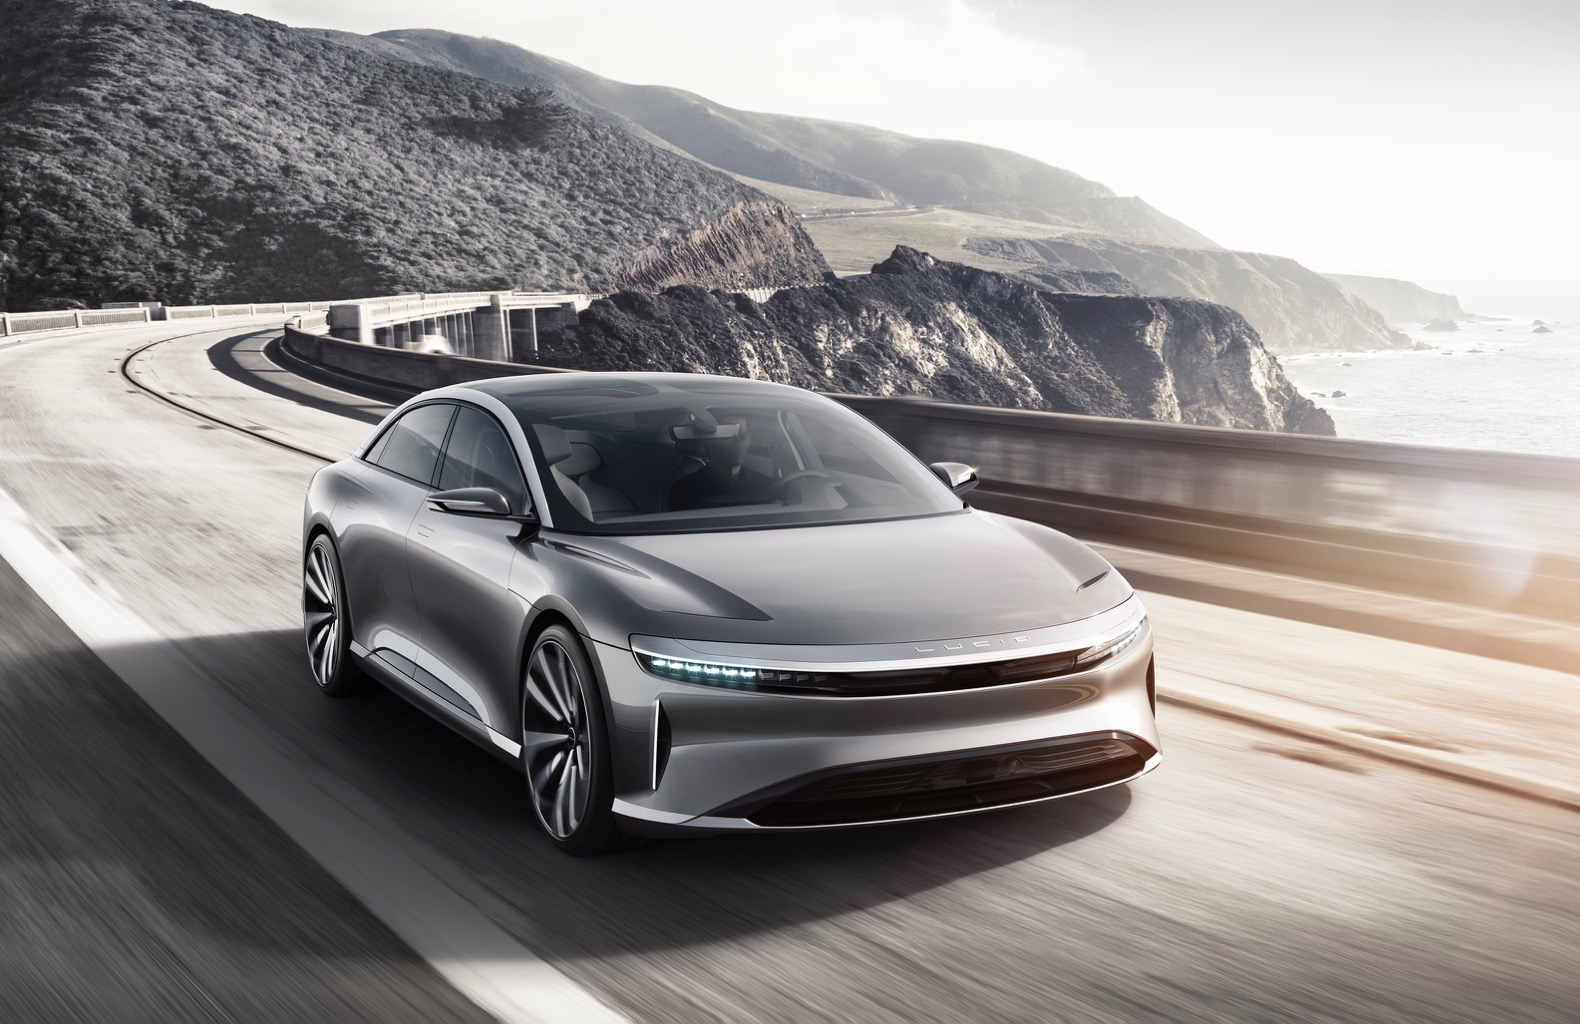 Lucid Motors unveils Tesla-killer electric car that can drive 400 miles on a single charge